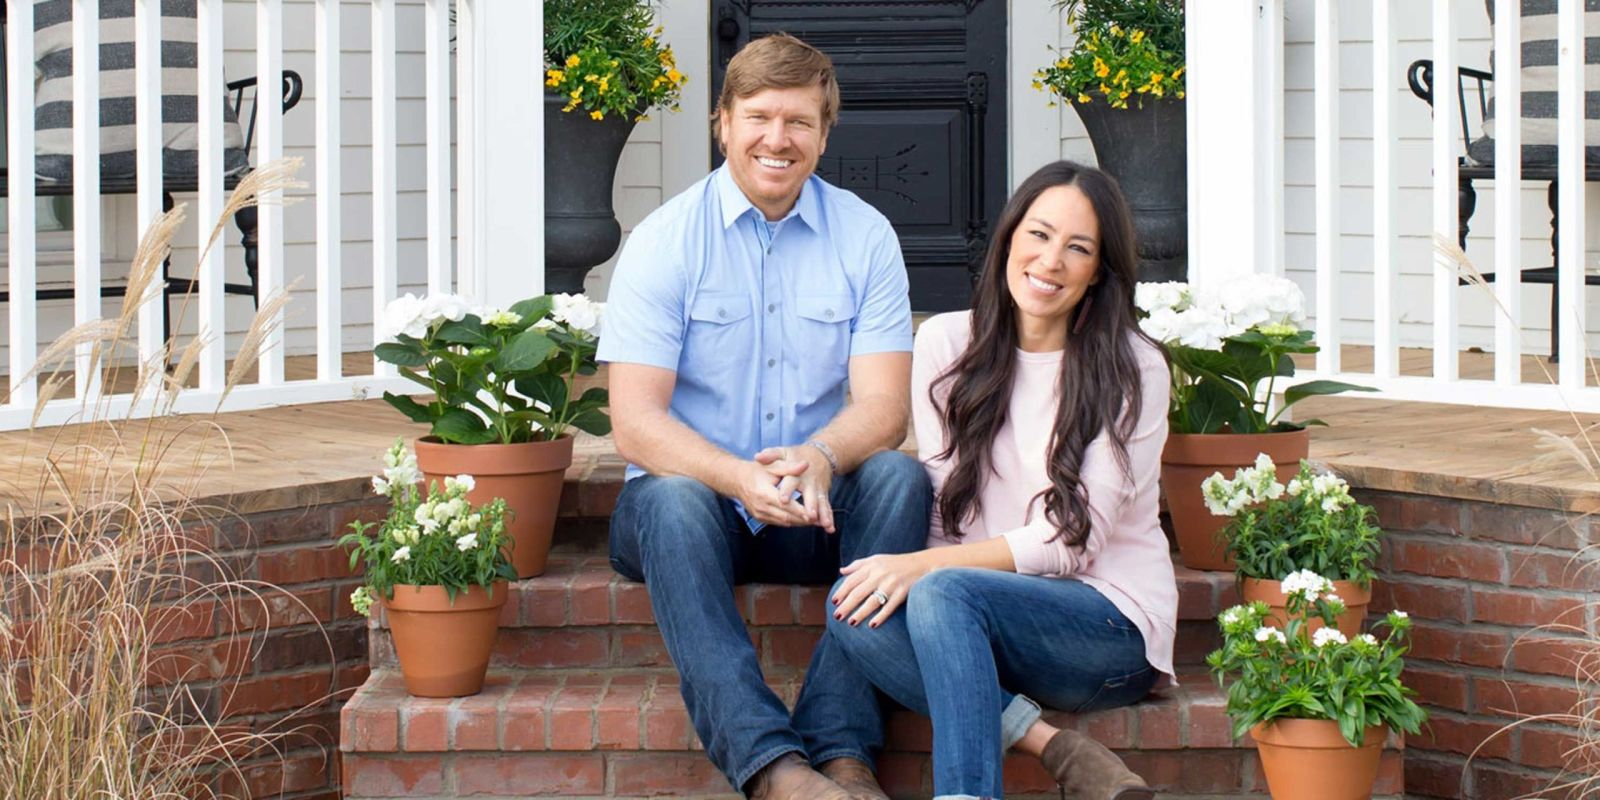 Joanna gaines wants a cooking show for How much do chip and joanna gaines make